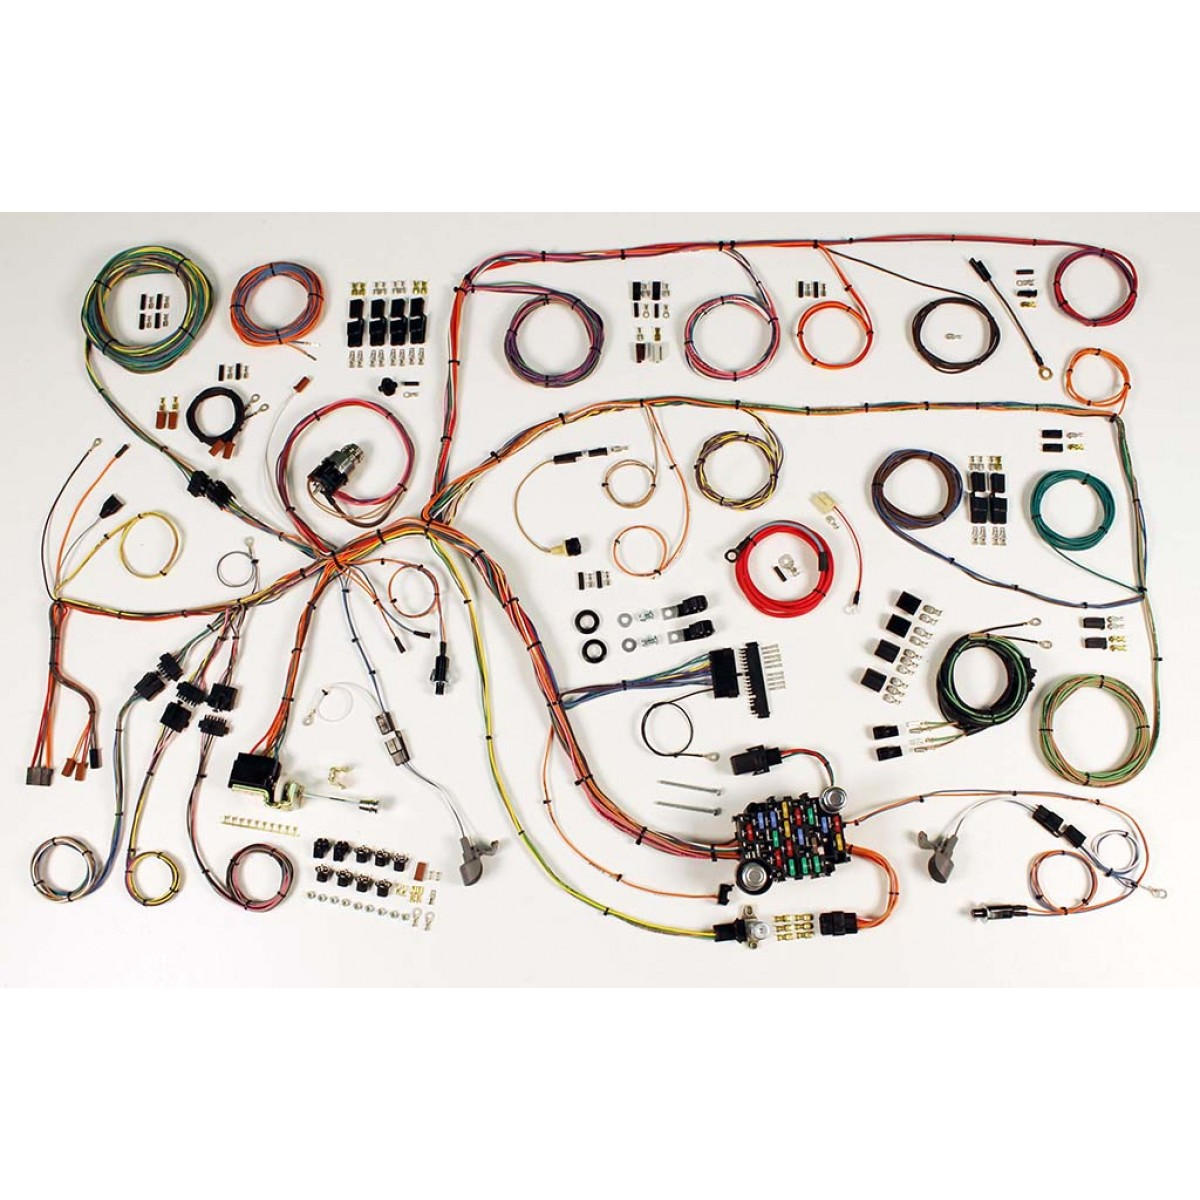 510379 complete wiring harness kit 1960 1964 ford falcon 1960 1965 mercury comet part 510379 1960 1964 ford falcon complete wiring harness kit 1960 1964 ford ford wiring harness kits at honlapkeszites.co